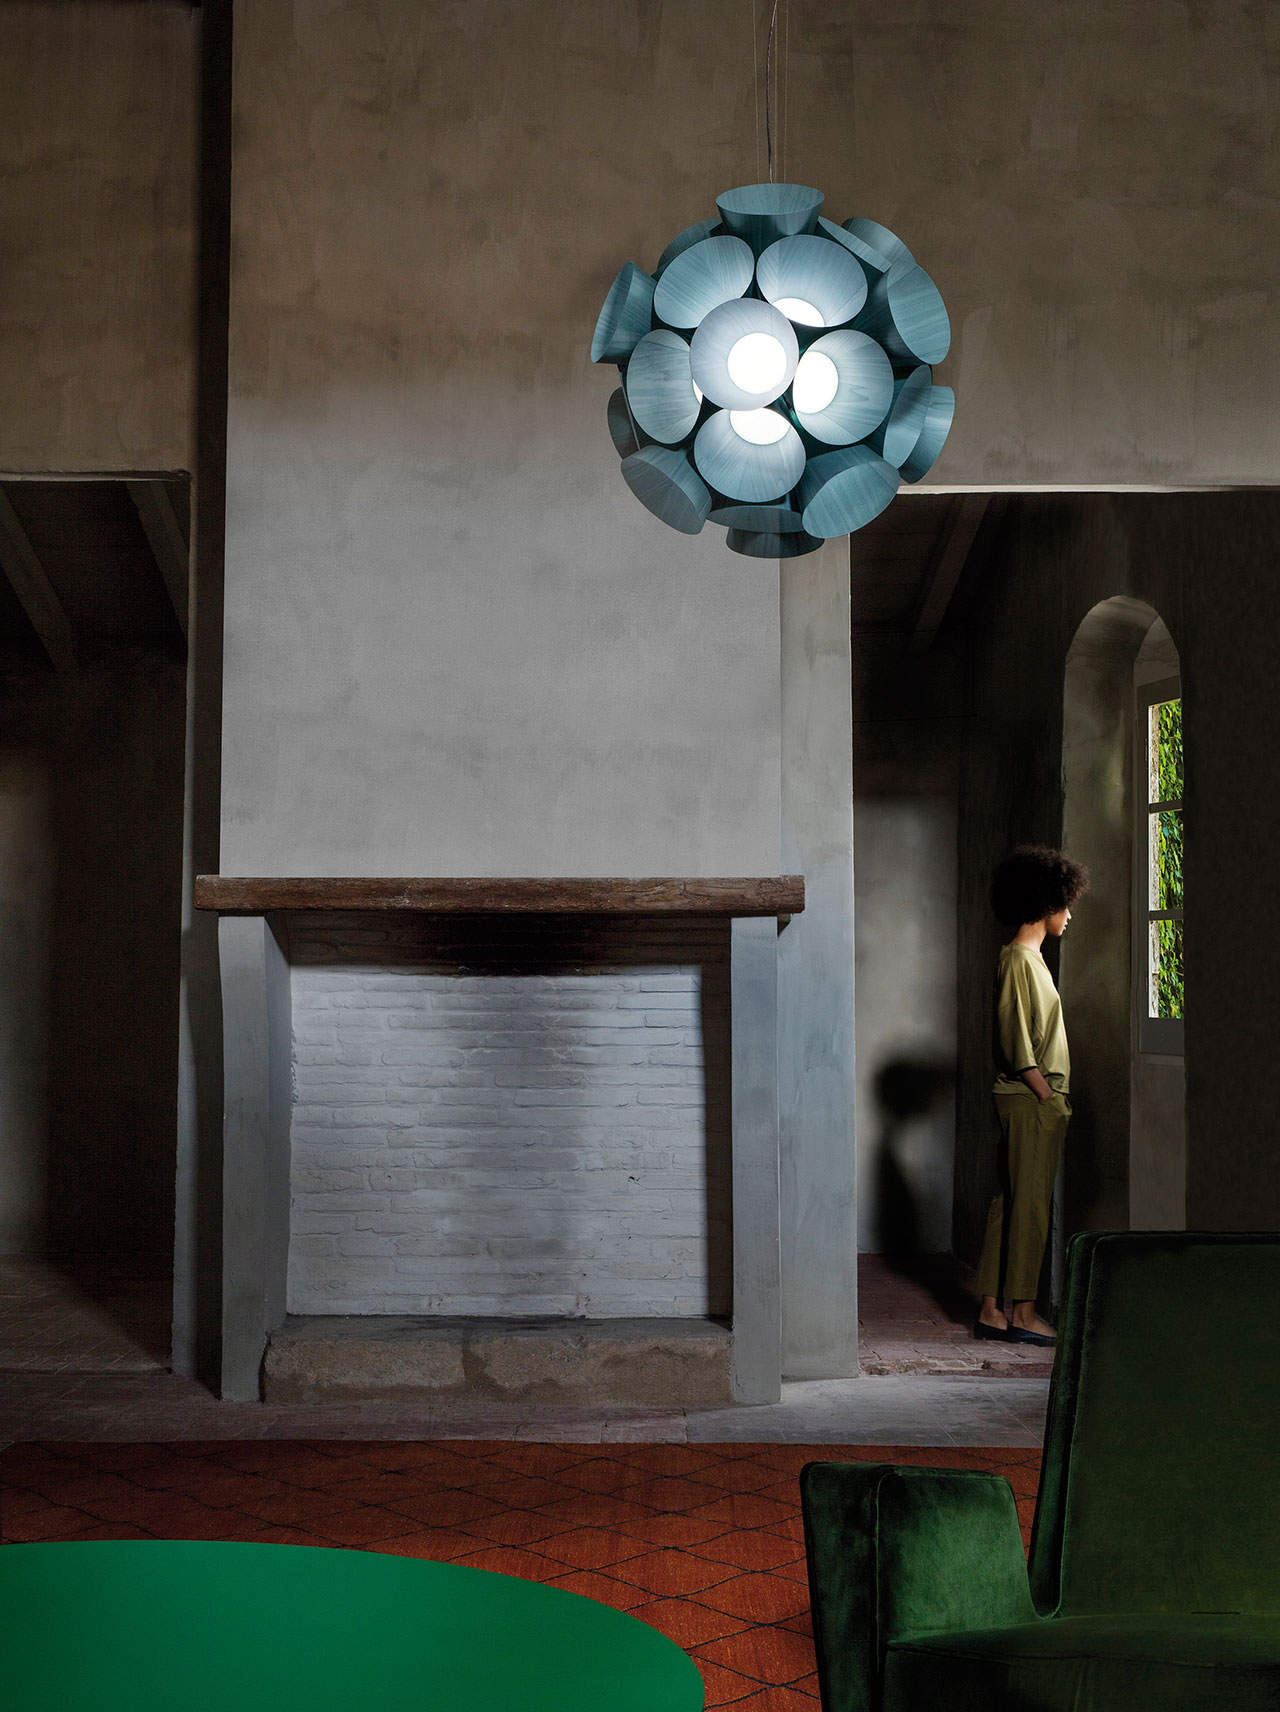 Dandelion pendant lamp by Burkhard Dämmer, from the Palacio de Casavells photo shoot. Photo by KlunderBie Studio.